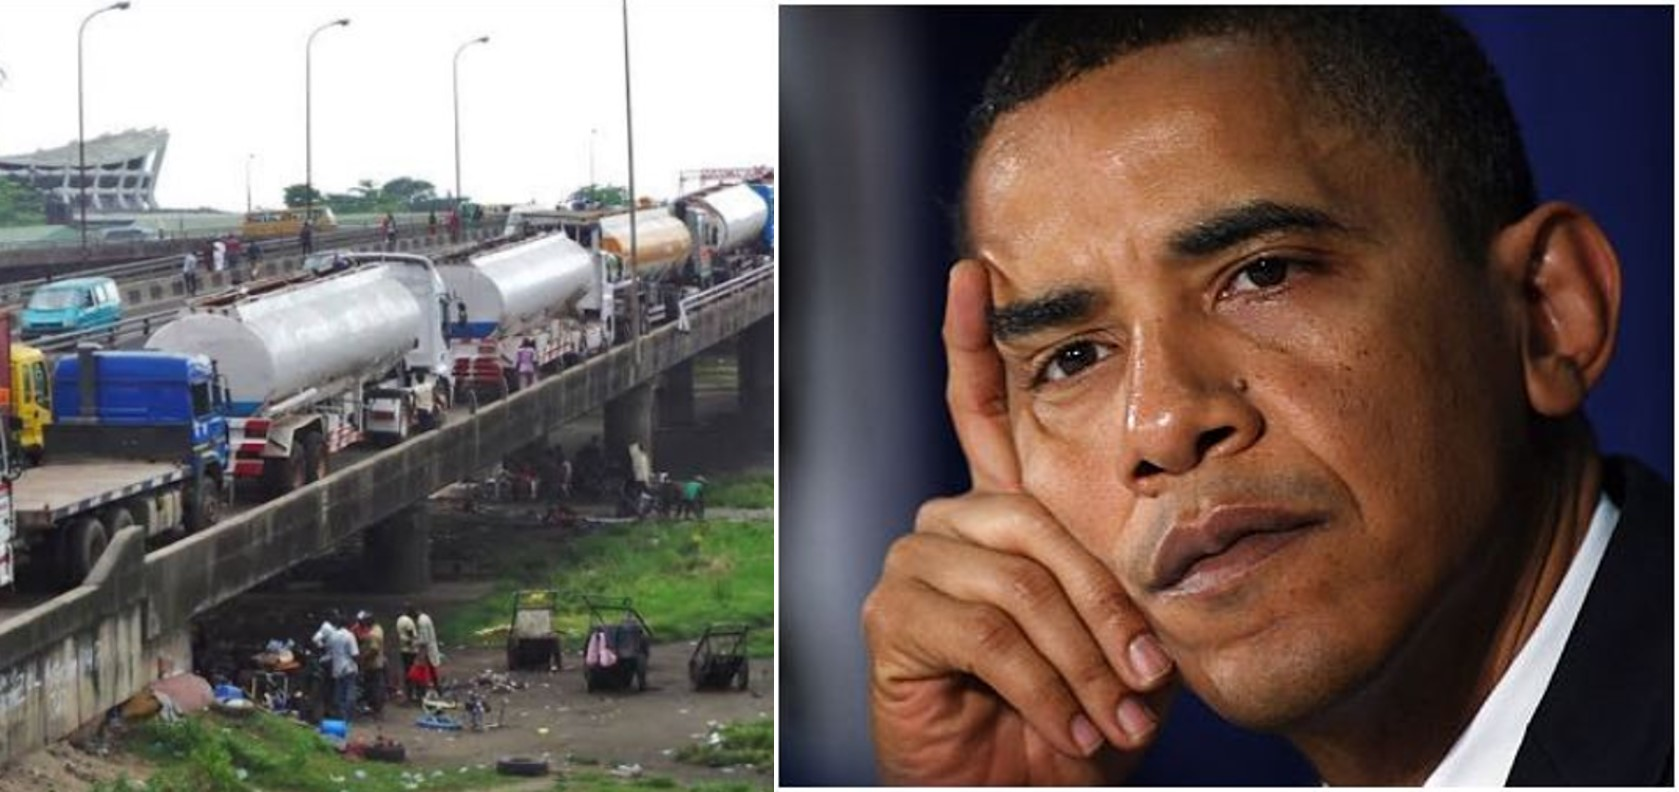 Lagosians angrily react as tankers and containers mysteriously disappear from Ikorodu road ahead of President Buhari's Saturday visit